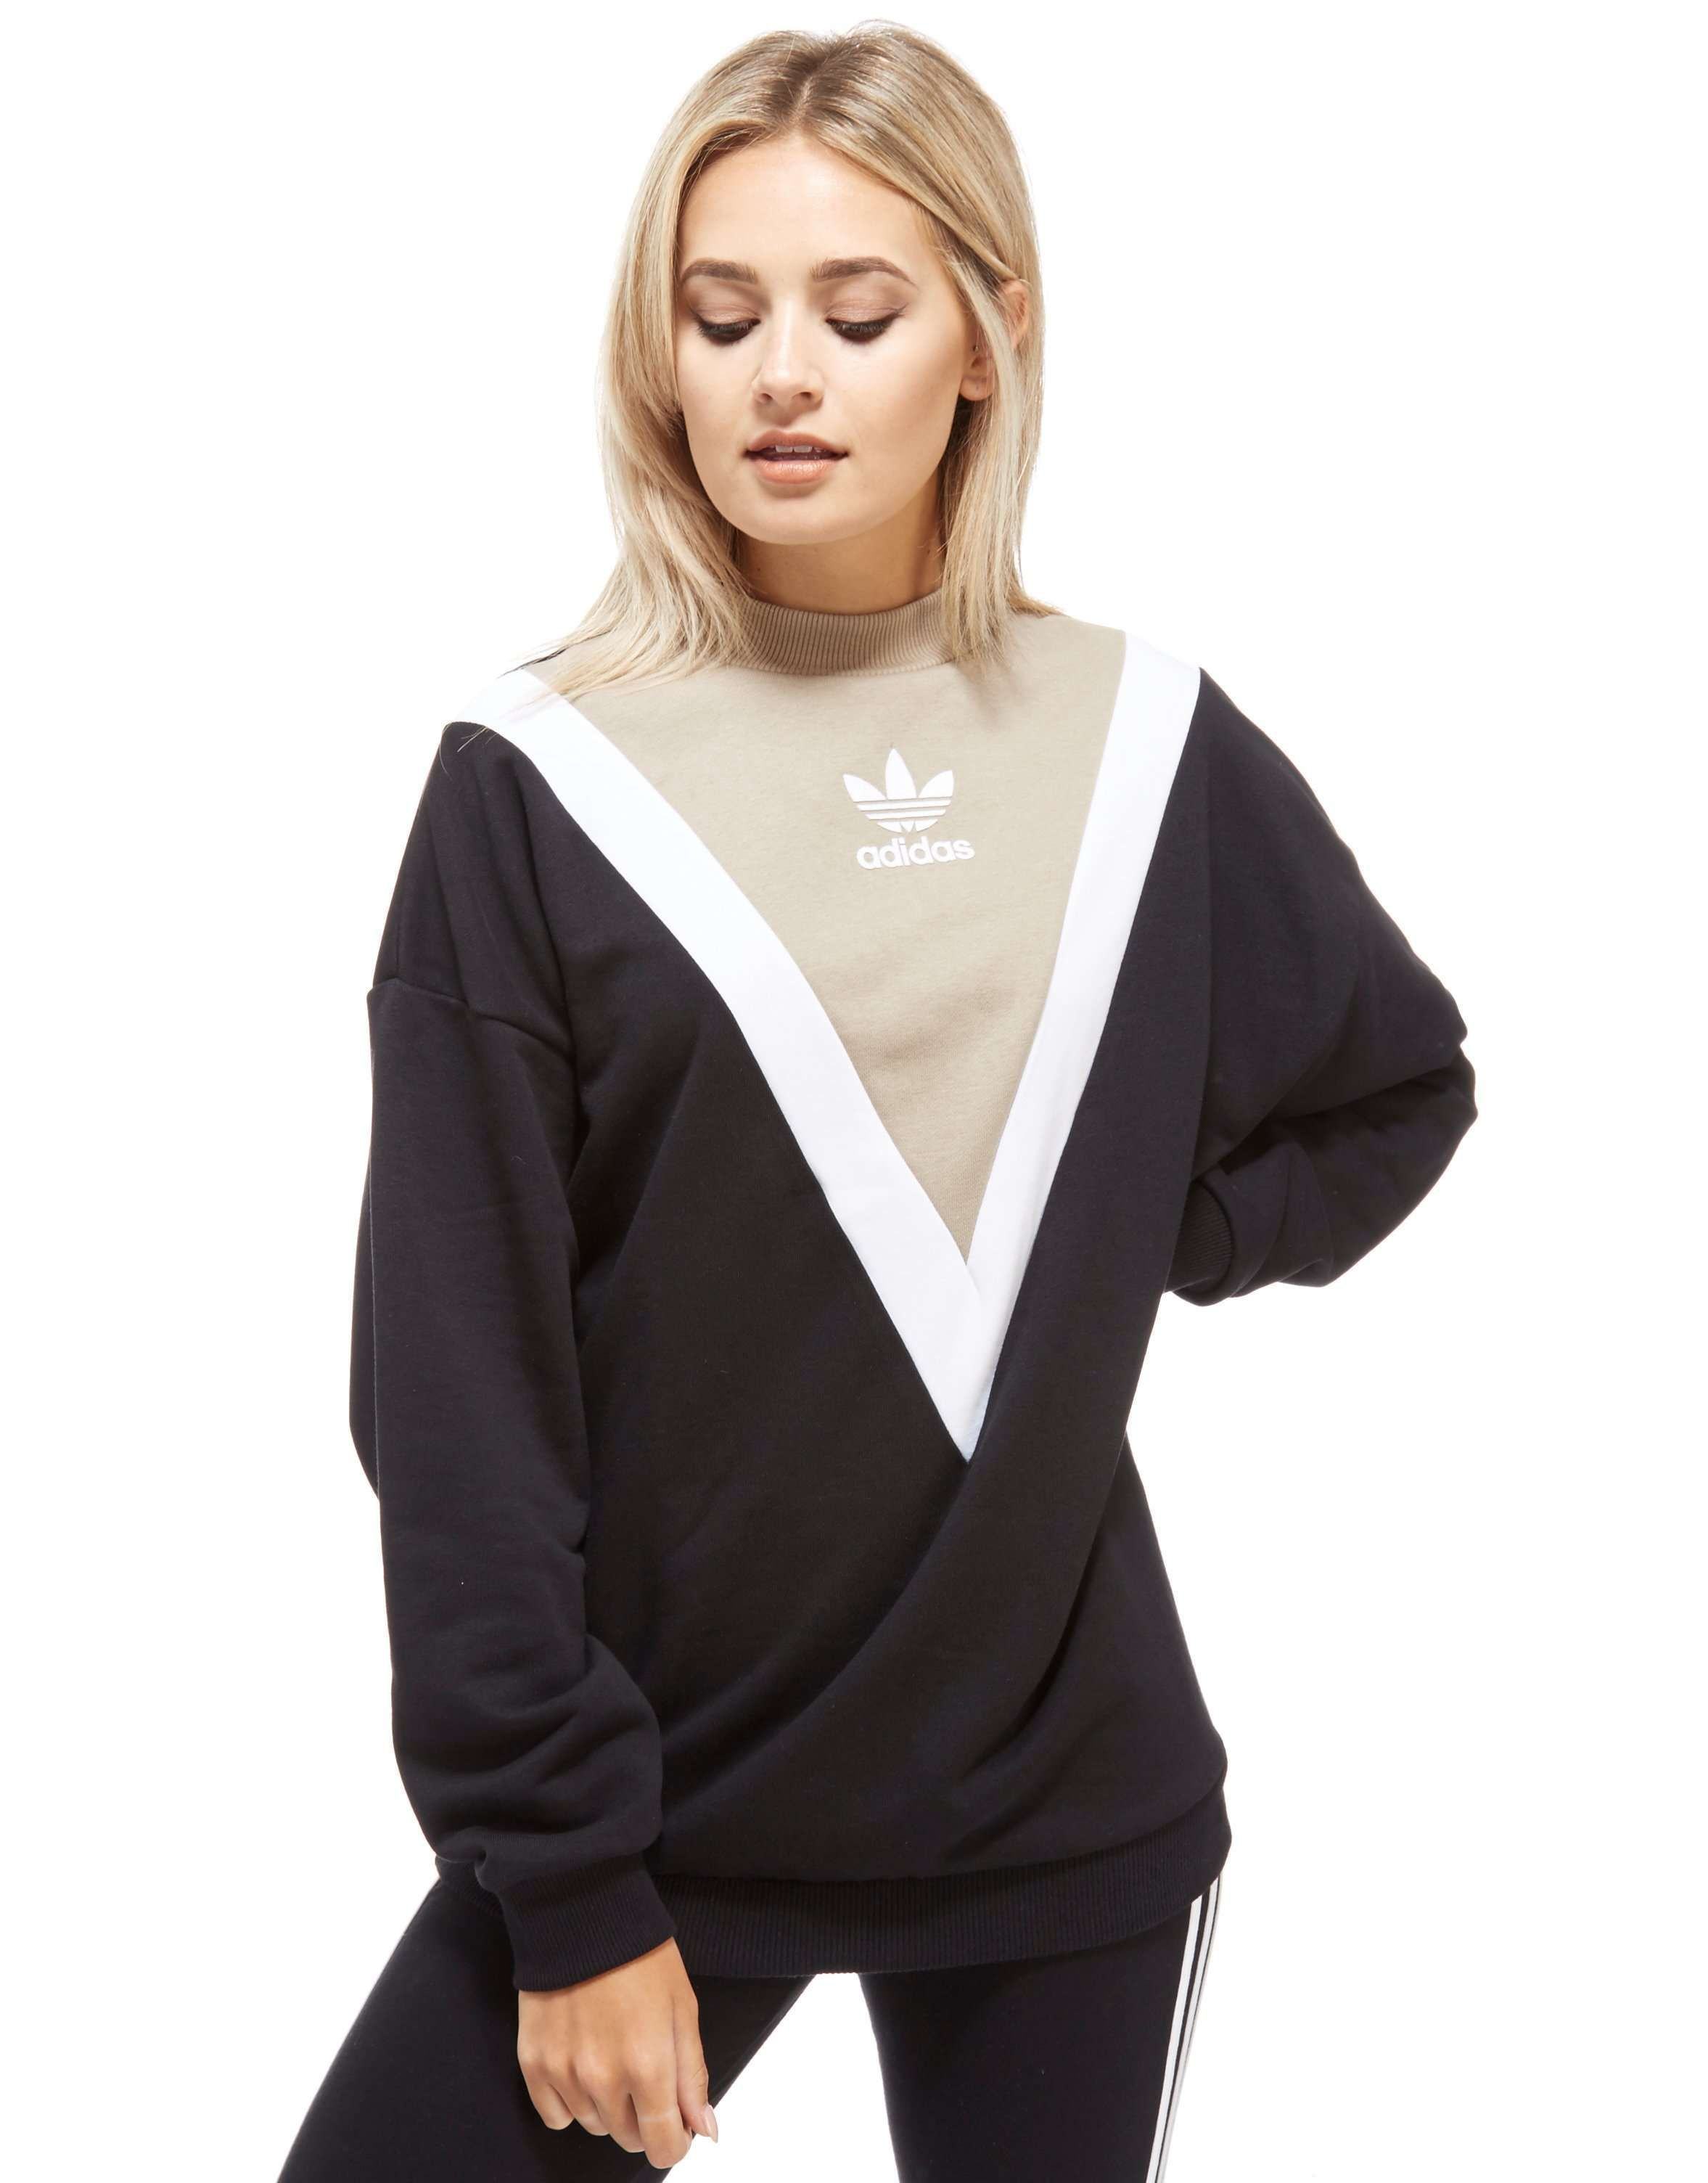 Originals Chevron Sweatshirt Store On line for | Adidas